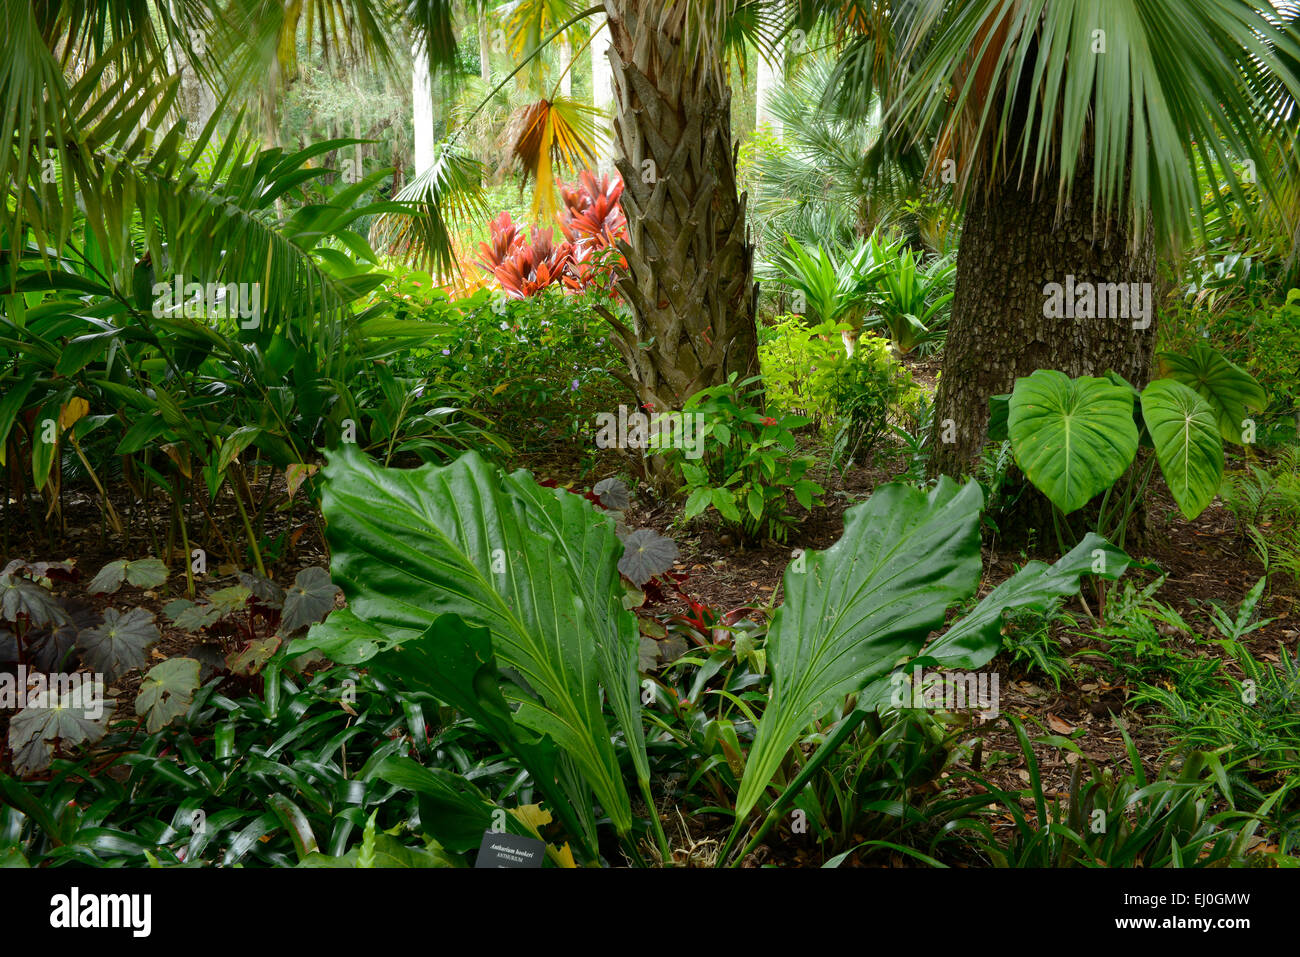 USA, Florida, Indian River County, Vero Beach, McKee, Botanical ...